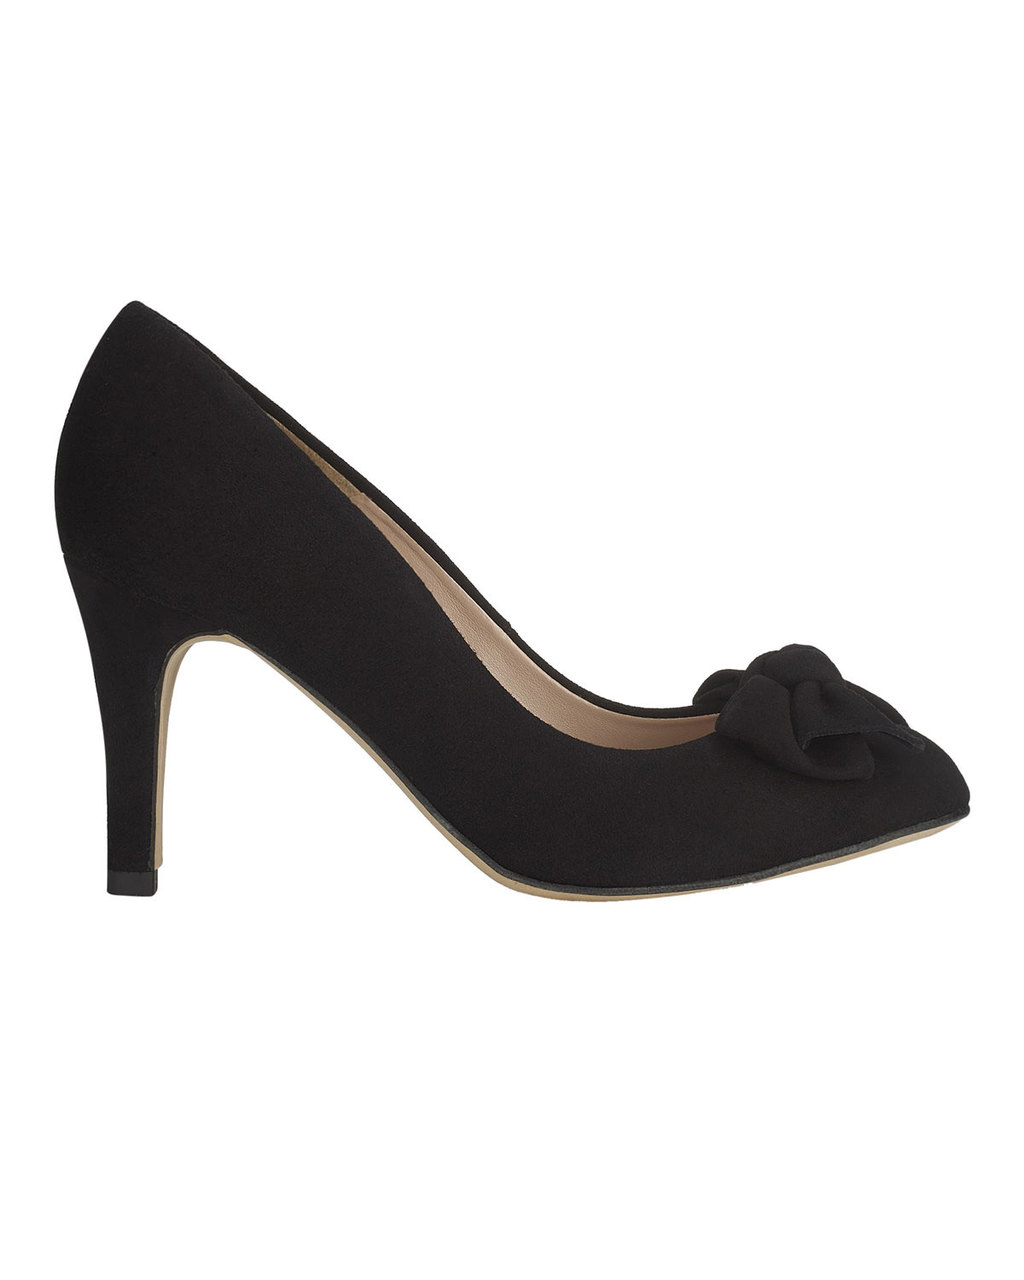 Amber Suede Bow Court - predominant colour: black; occasions: work, creative work; material: suede; heel height: high; heel: stiletto; toe: pointed toe; style: courts; finish: plain; pattern: plain; embellishment: bow; season: s/s 2016